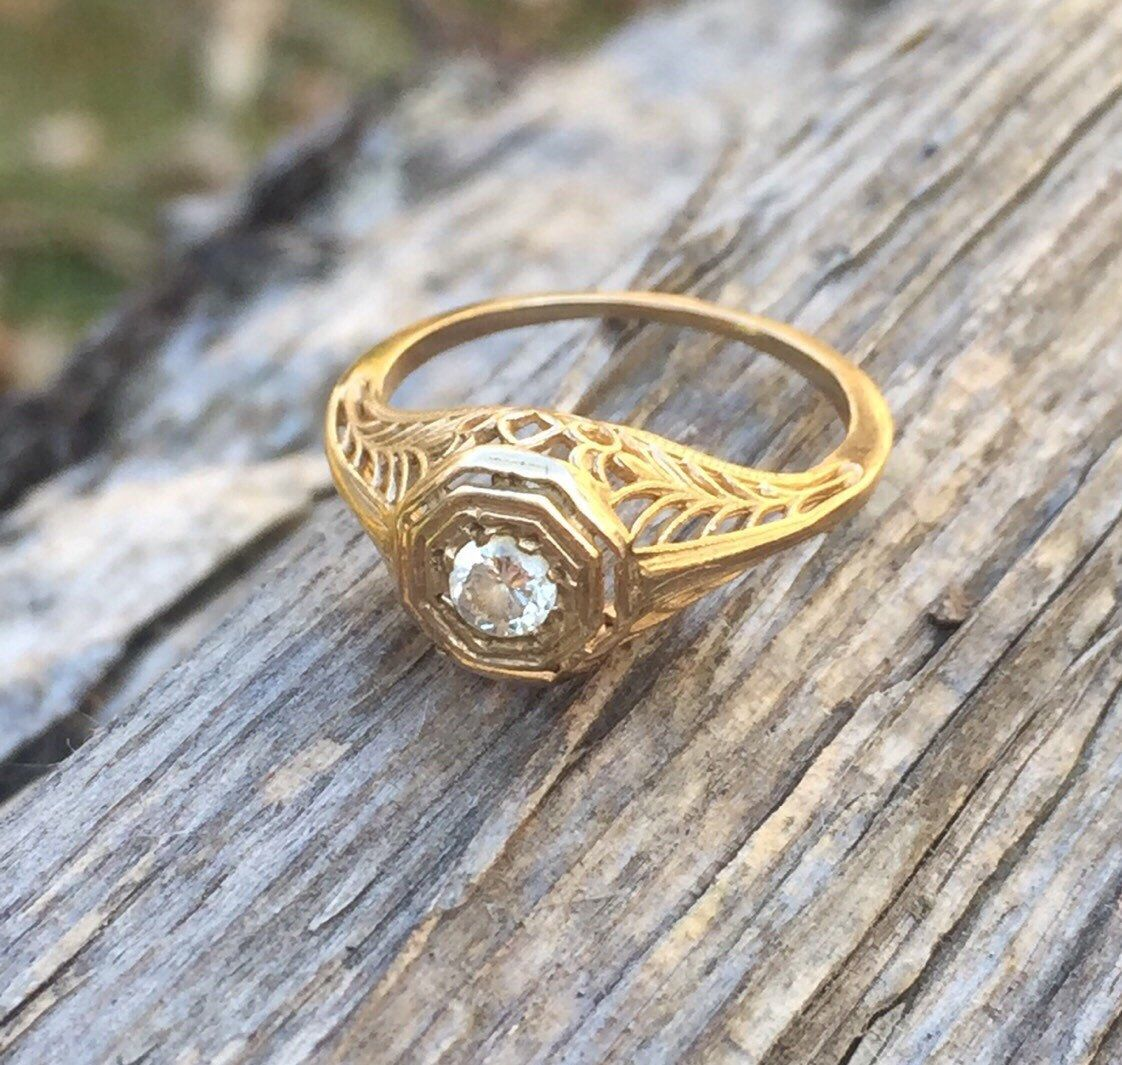 Art Deco 14K Yellow Gold Filigree & Diamond Engagement Ring size 5 1/5 by AntiqueJewelryBox on Etsy https://www.etsy.com/listing/217055658/art-deco-14k-yellow-gold-filigree